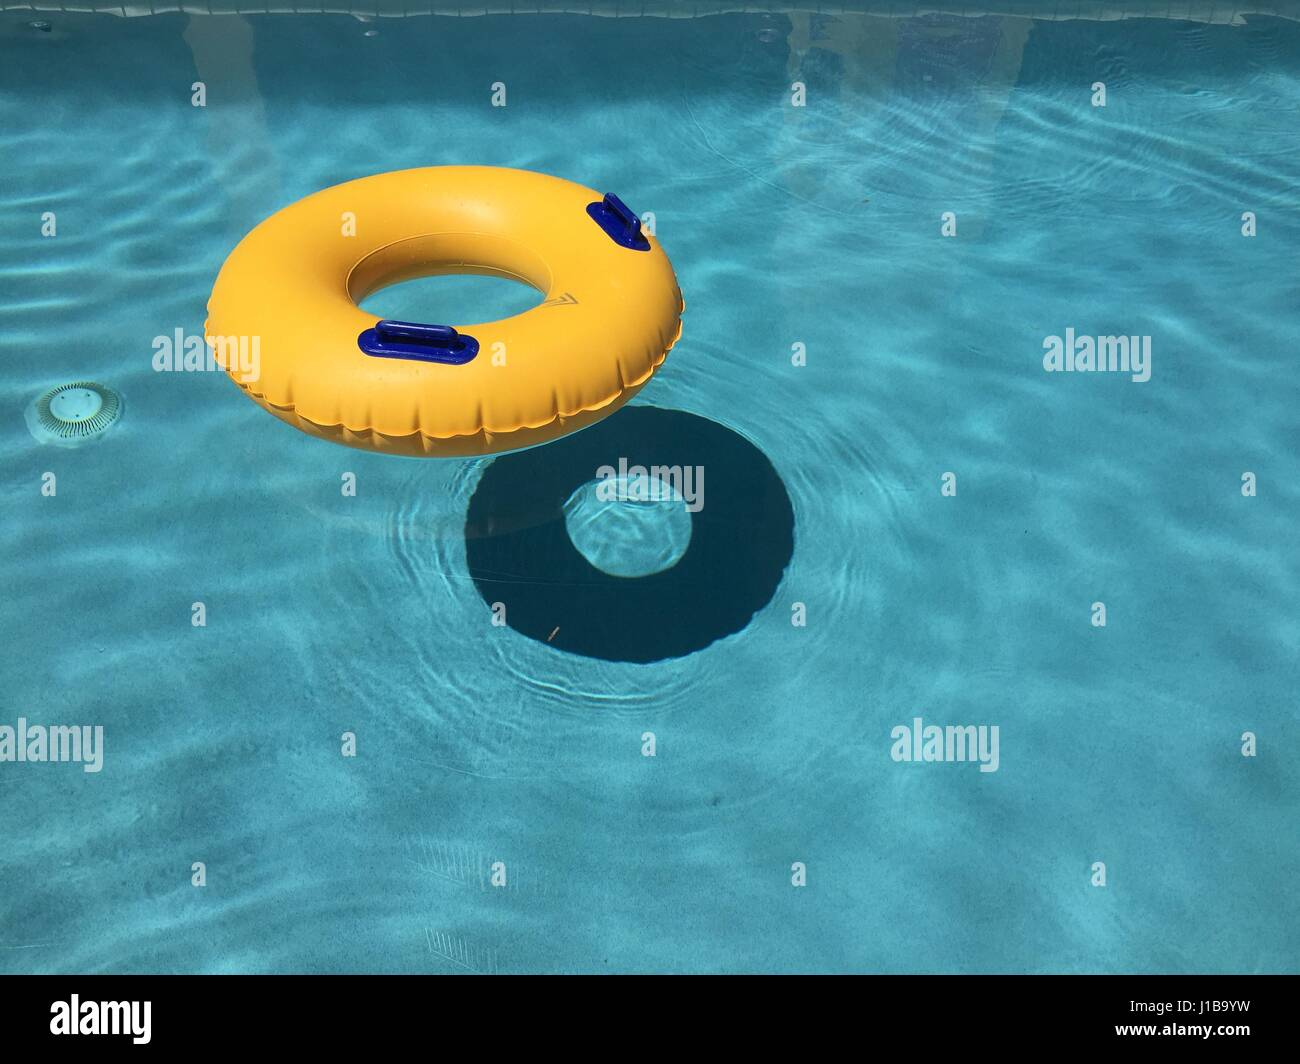 Yellow pool float / ring floating in a swimming pool Stock Photo ...